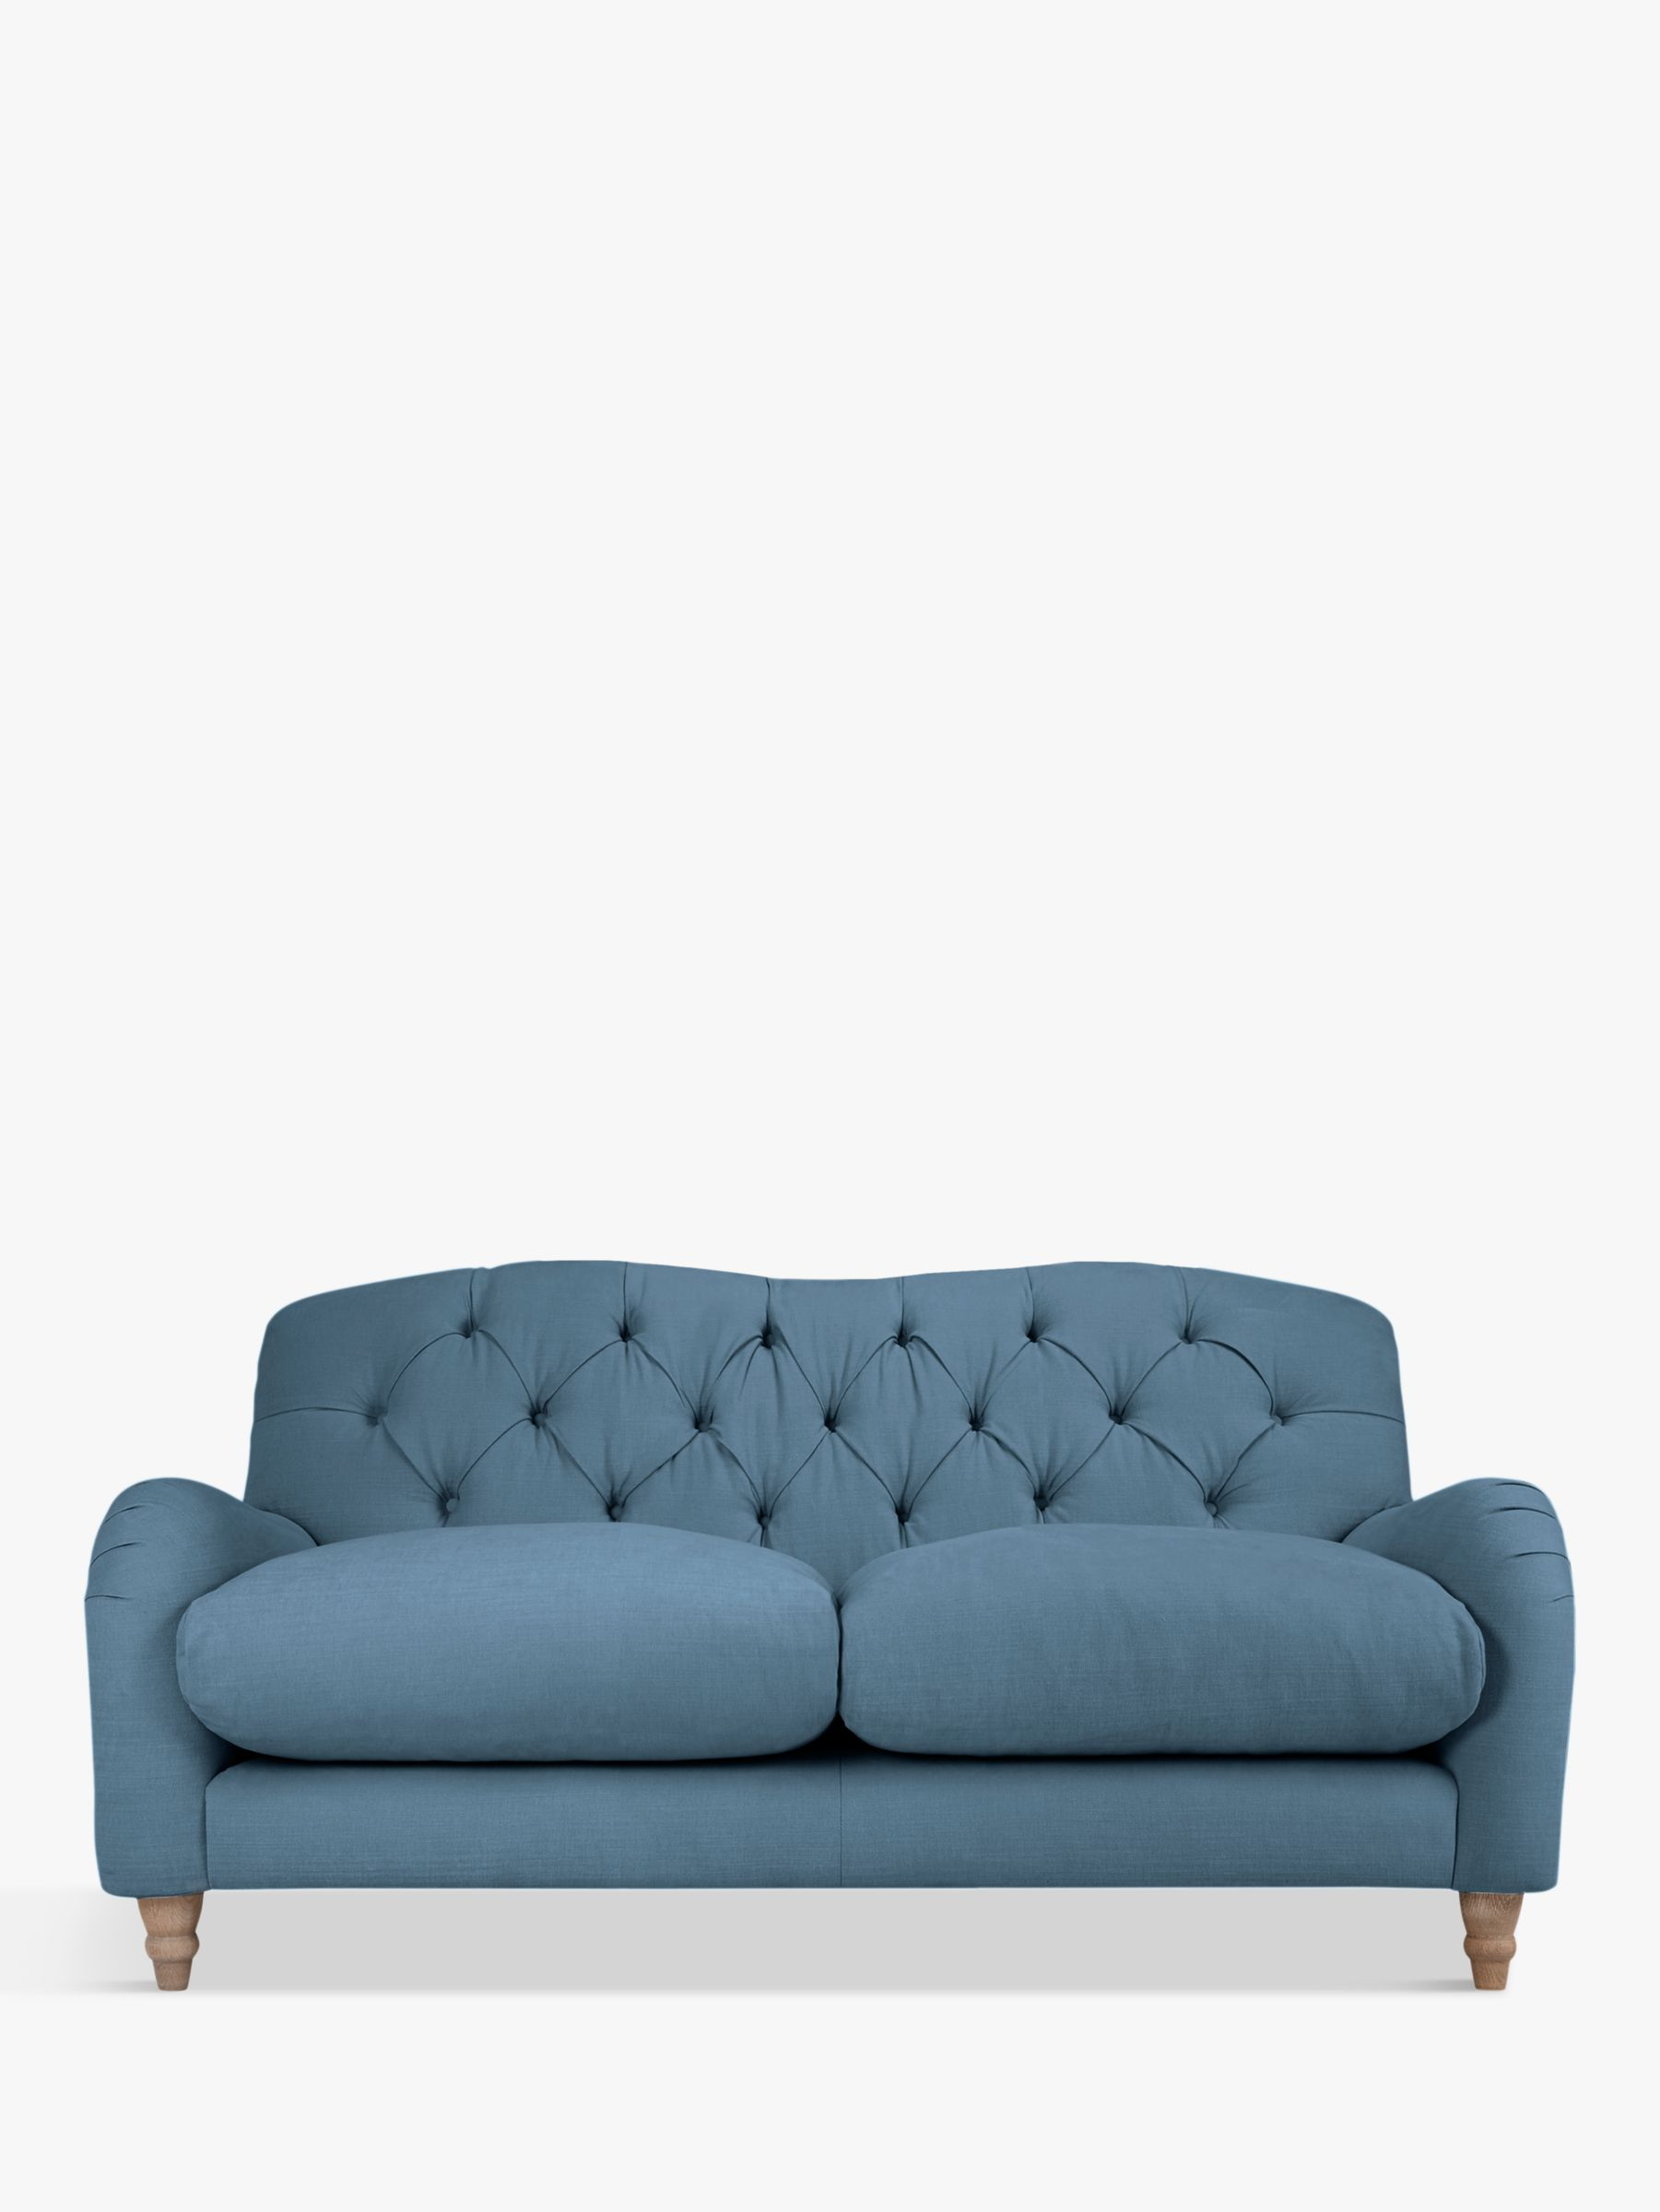 extra deep sofa canada mart colorado springs co buy crumble 2 seater medium by loaf at john lewis ...